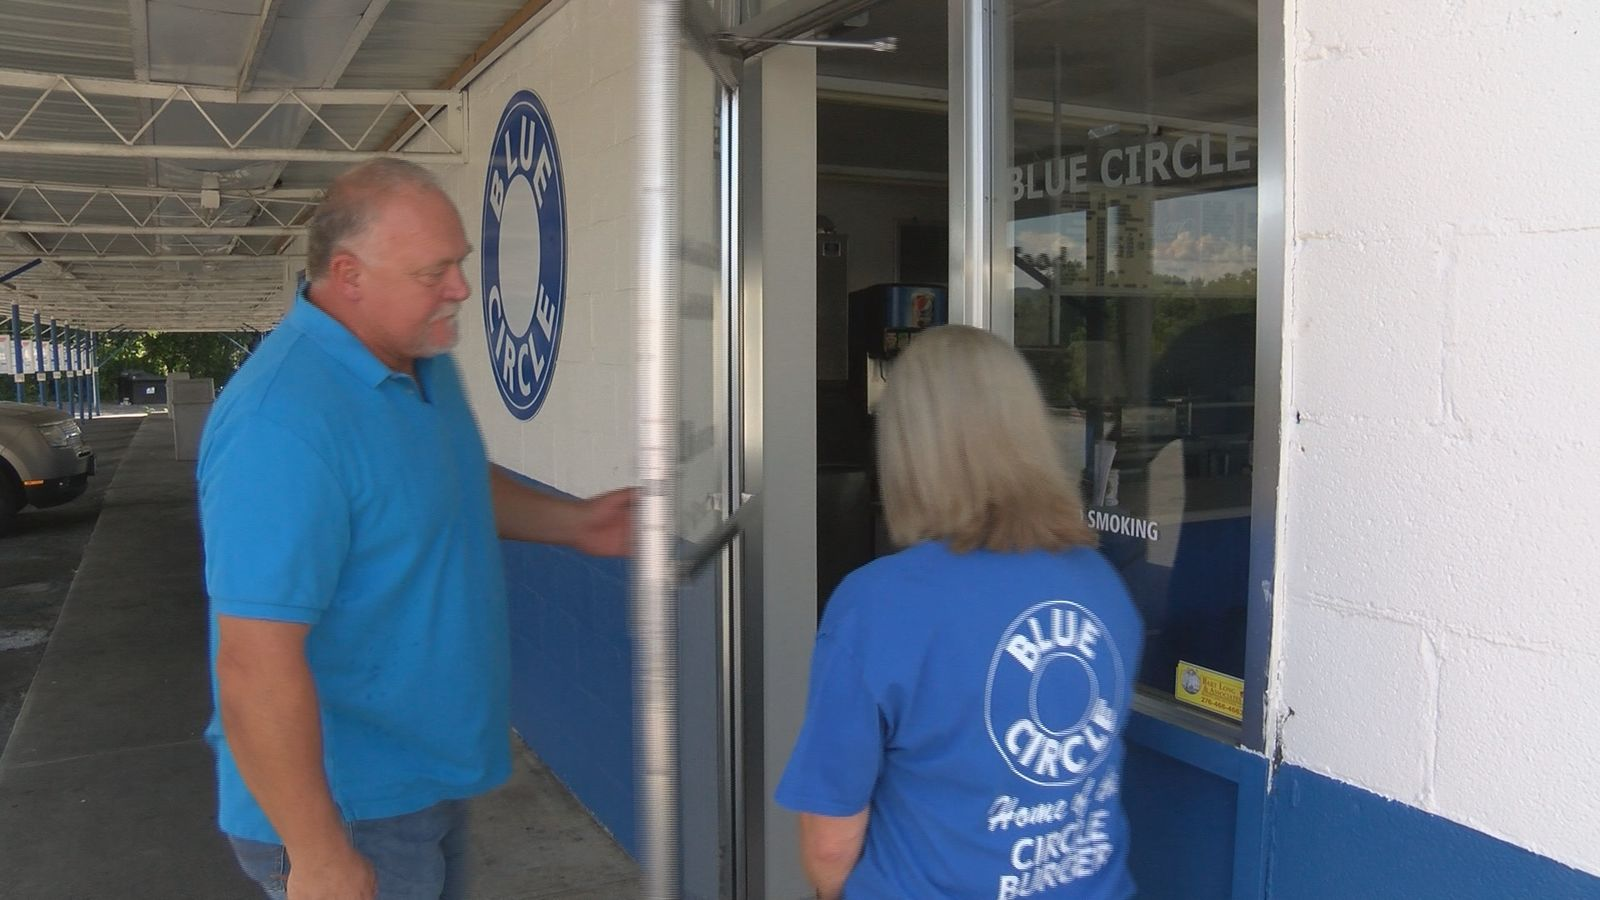 The Sourbeer couple plans to add live music and an all-day breakfast option to their revival of Blue Circle. (Angelique Arintok, WCYB)